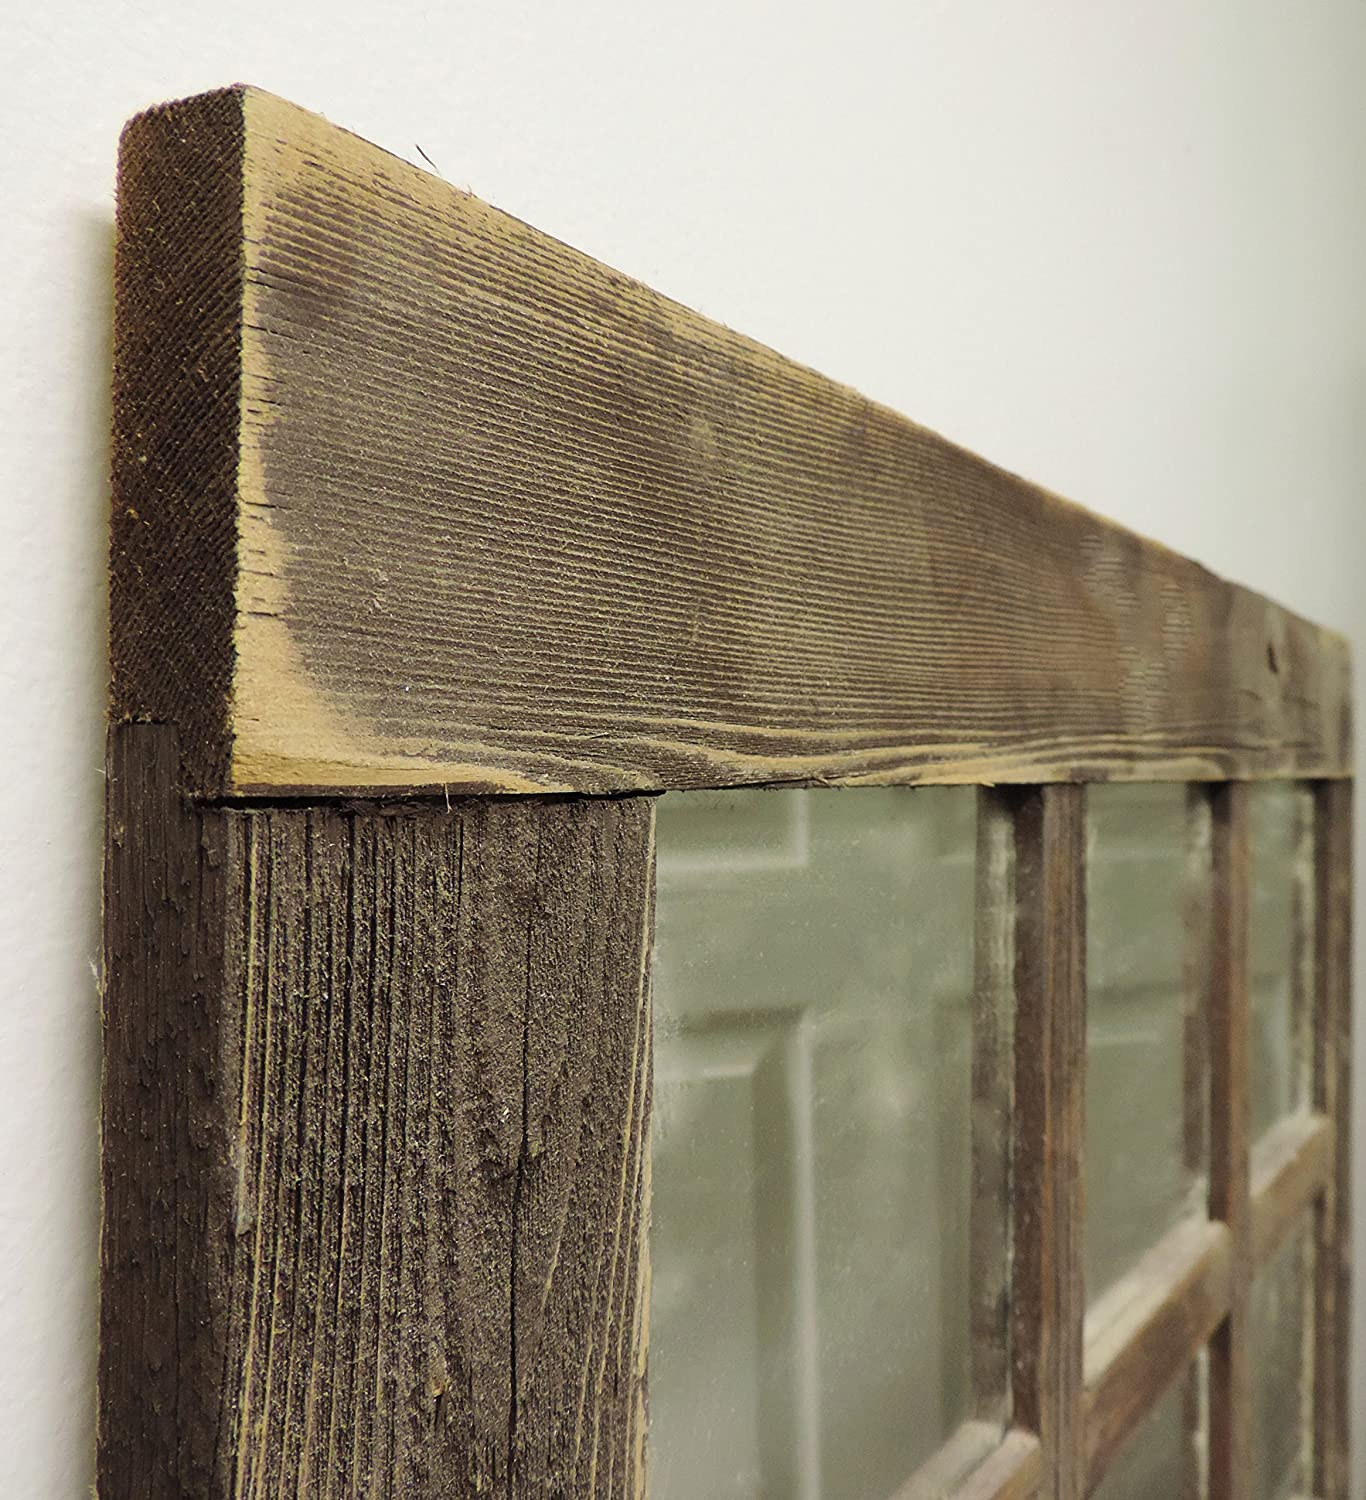 Rustic Barnwood Window Mirror 24 X 24 (9 pane)